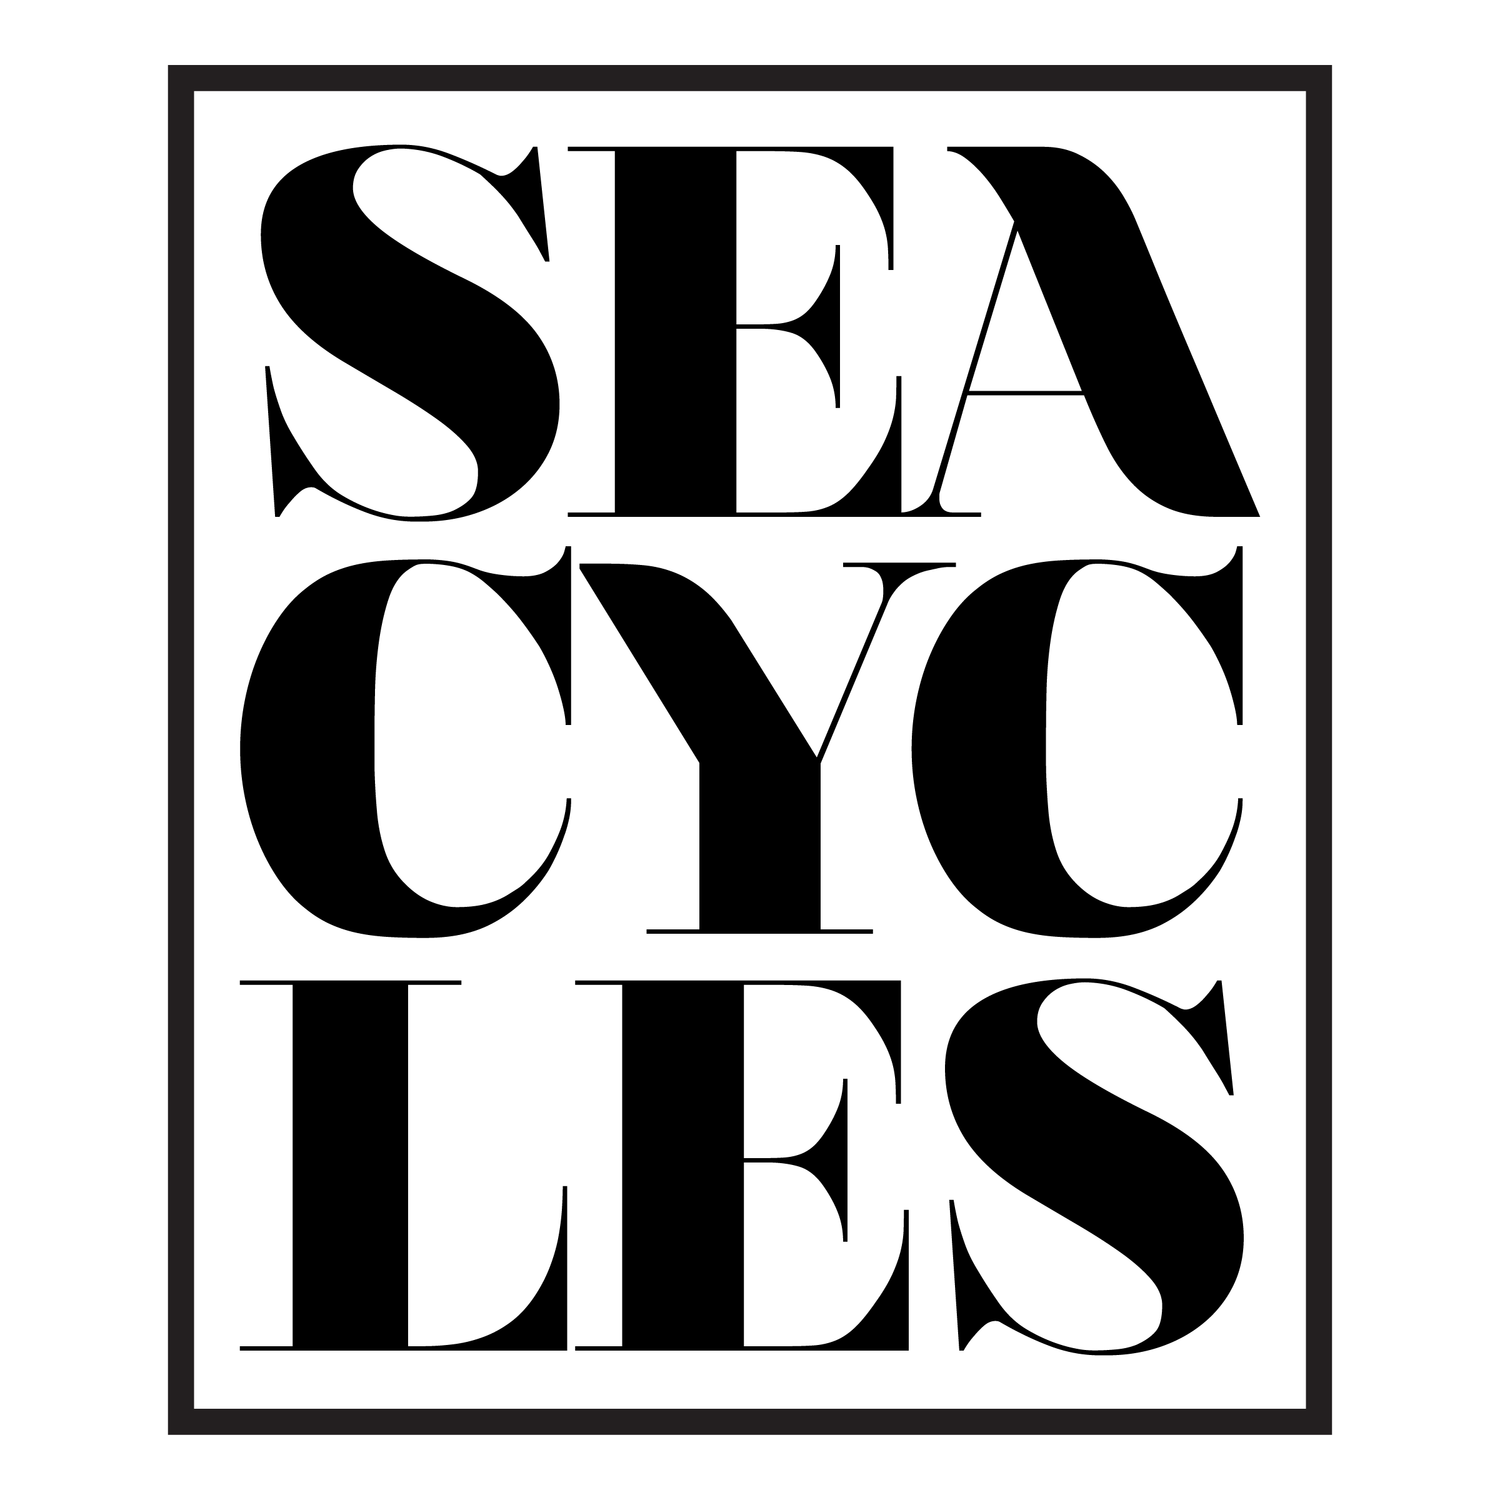 Sea Cycles